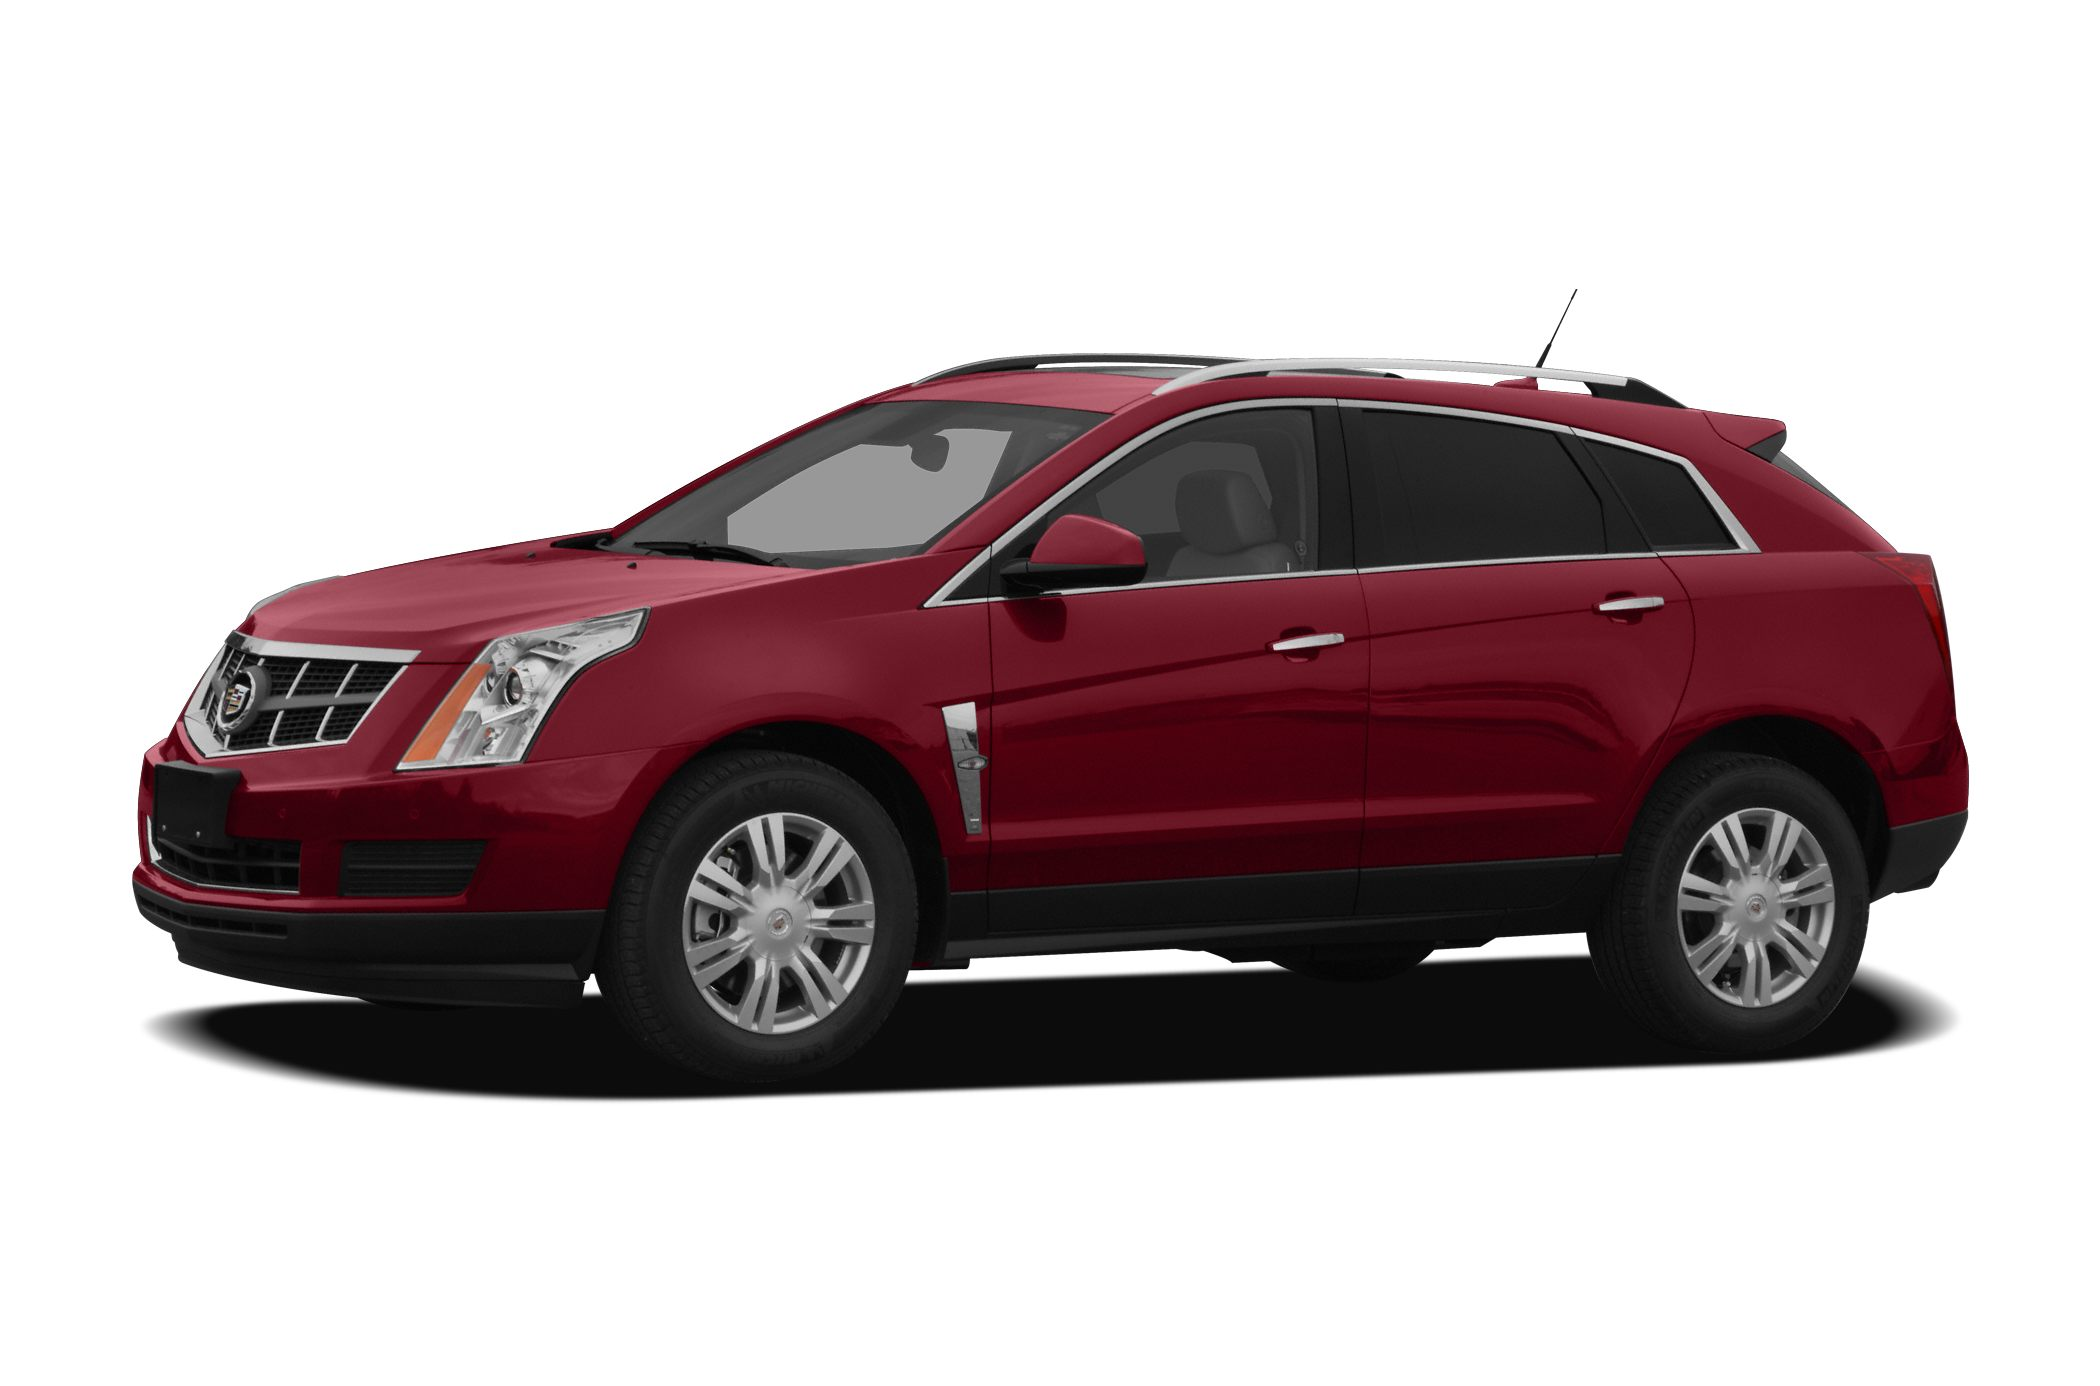 2010 Cadillac SRX Luxury Collection SUV for sale in Williamsville for $18,994 with 82,783 miles.